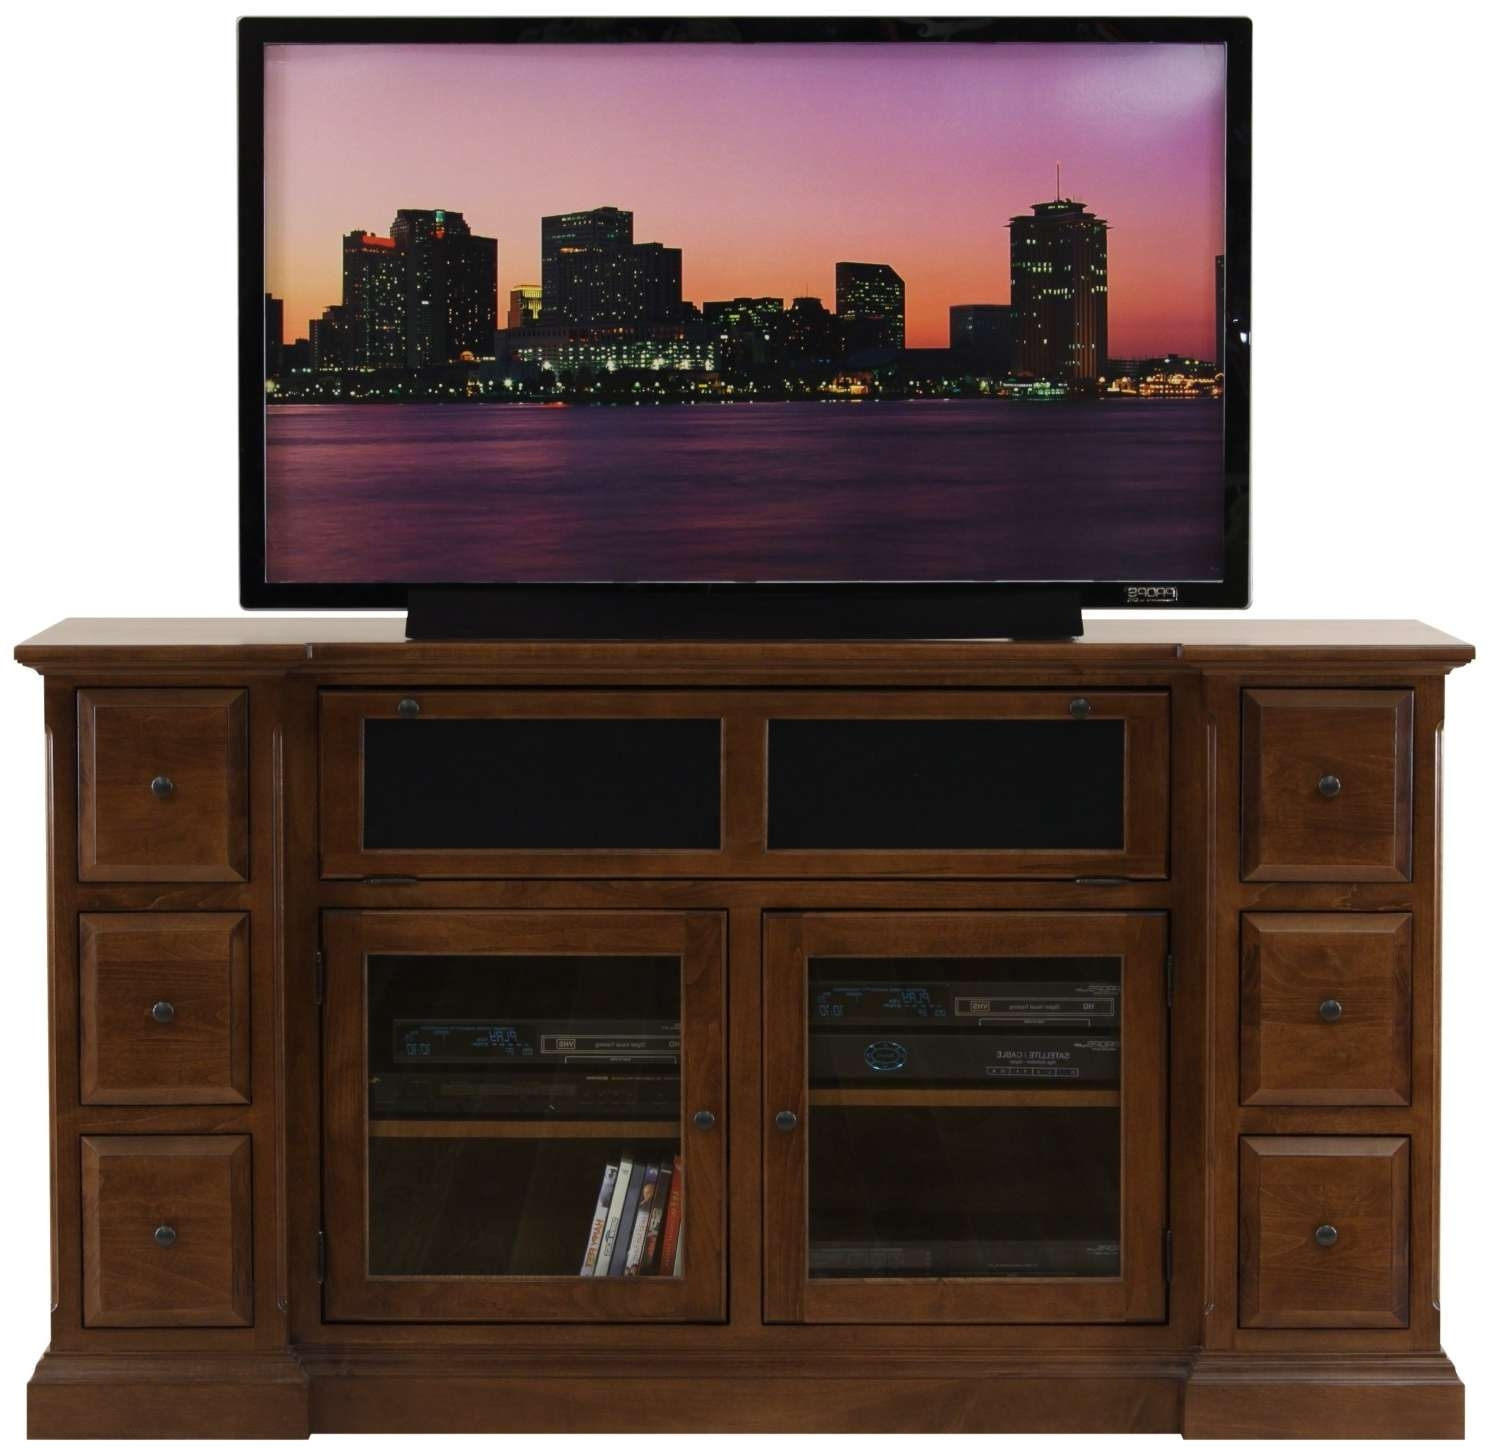 Wood Tv Stand With Glass Doors Images – Doors Design Ideas Inside Wood Tv Stands With Glass (View 15 of 15)